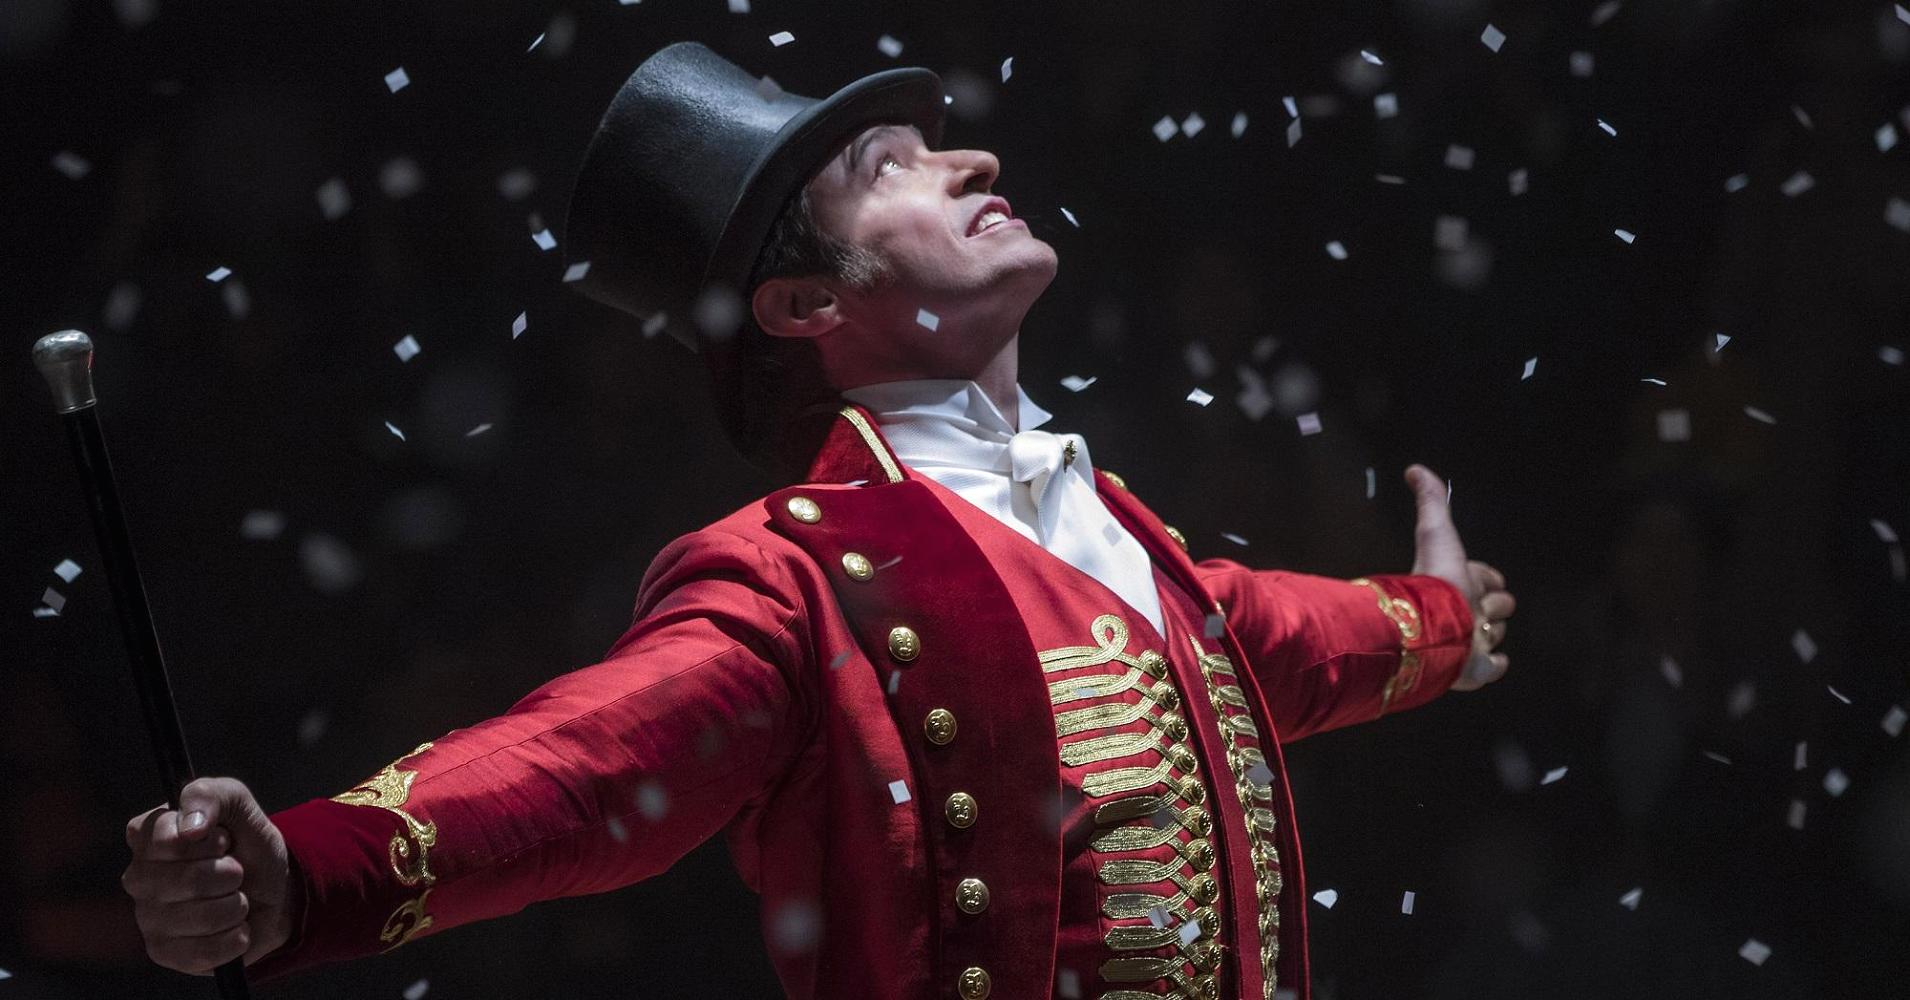 """Image Credit: Hugh Jackman as P.T. Barnum in """" The Greatest Showman """" © 20th Century Fox Film Corporation / Photo by Niko Tavernise"""